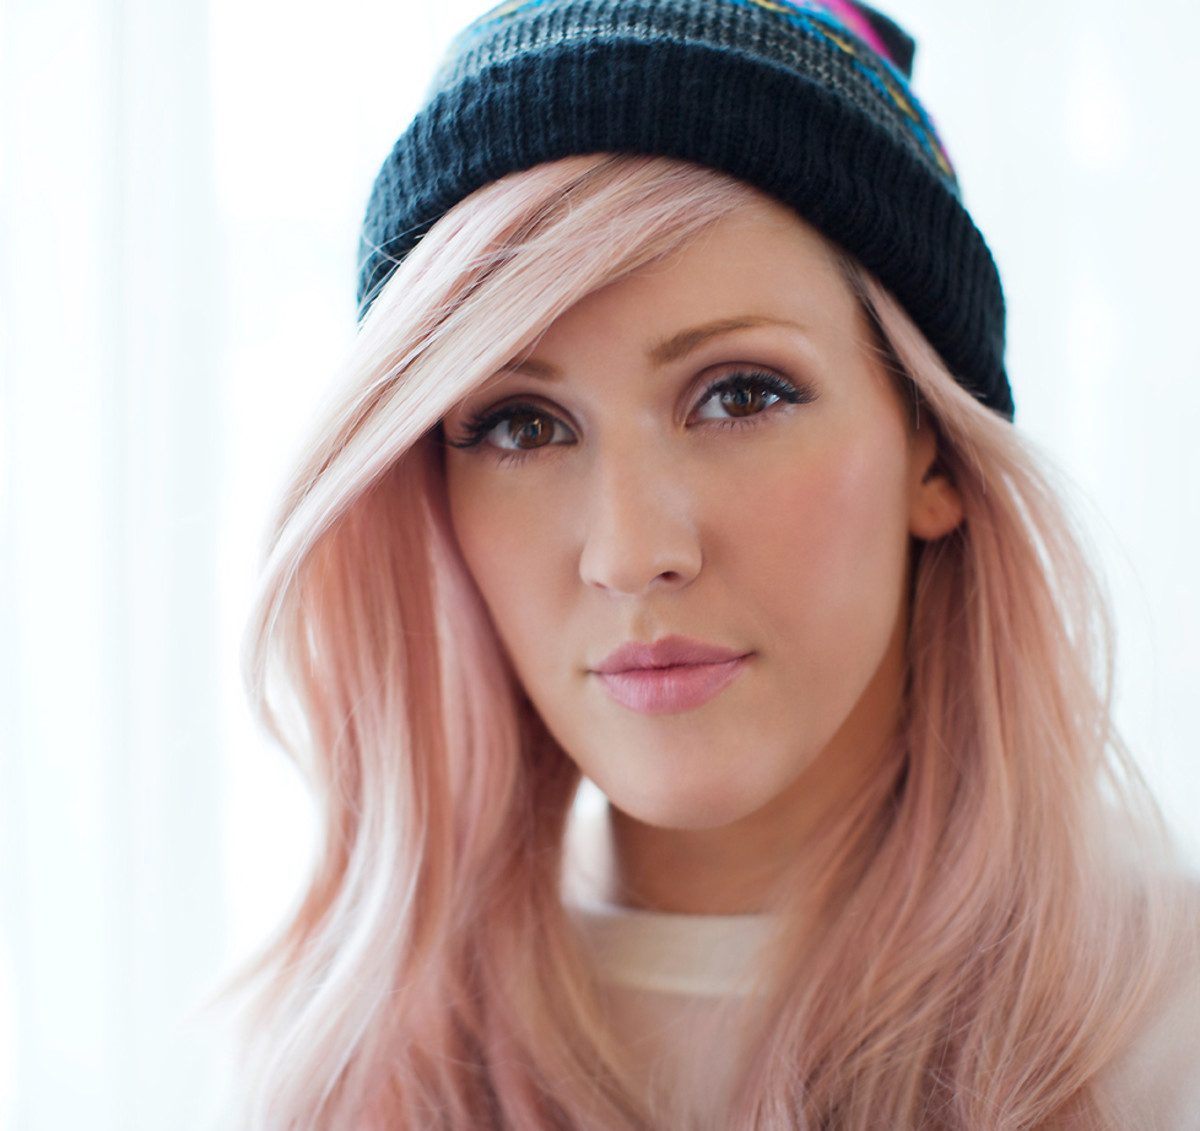 mac ellie goulding_ellie in pinkwashed hair and a cap